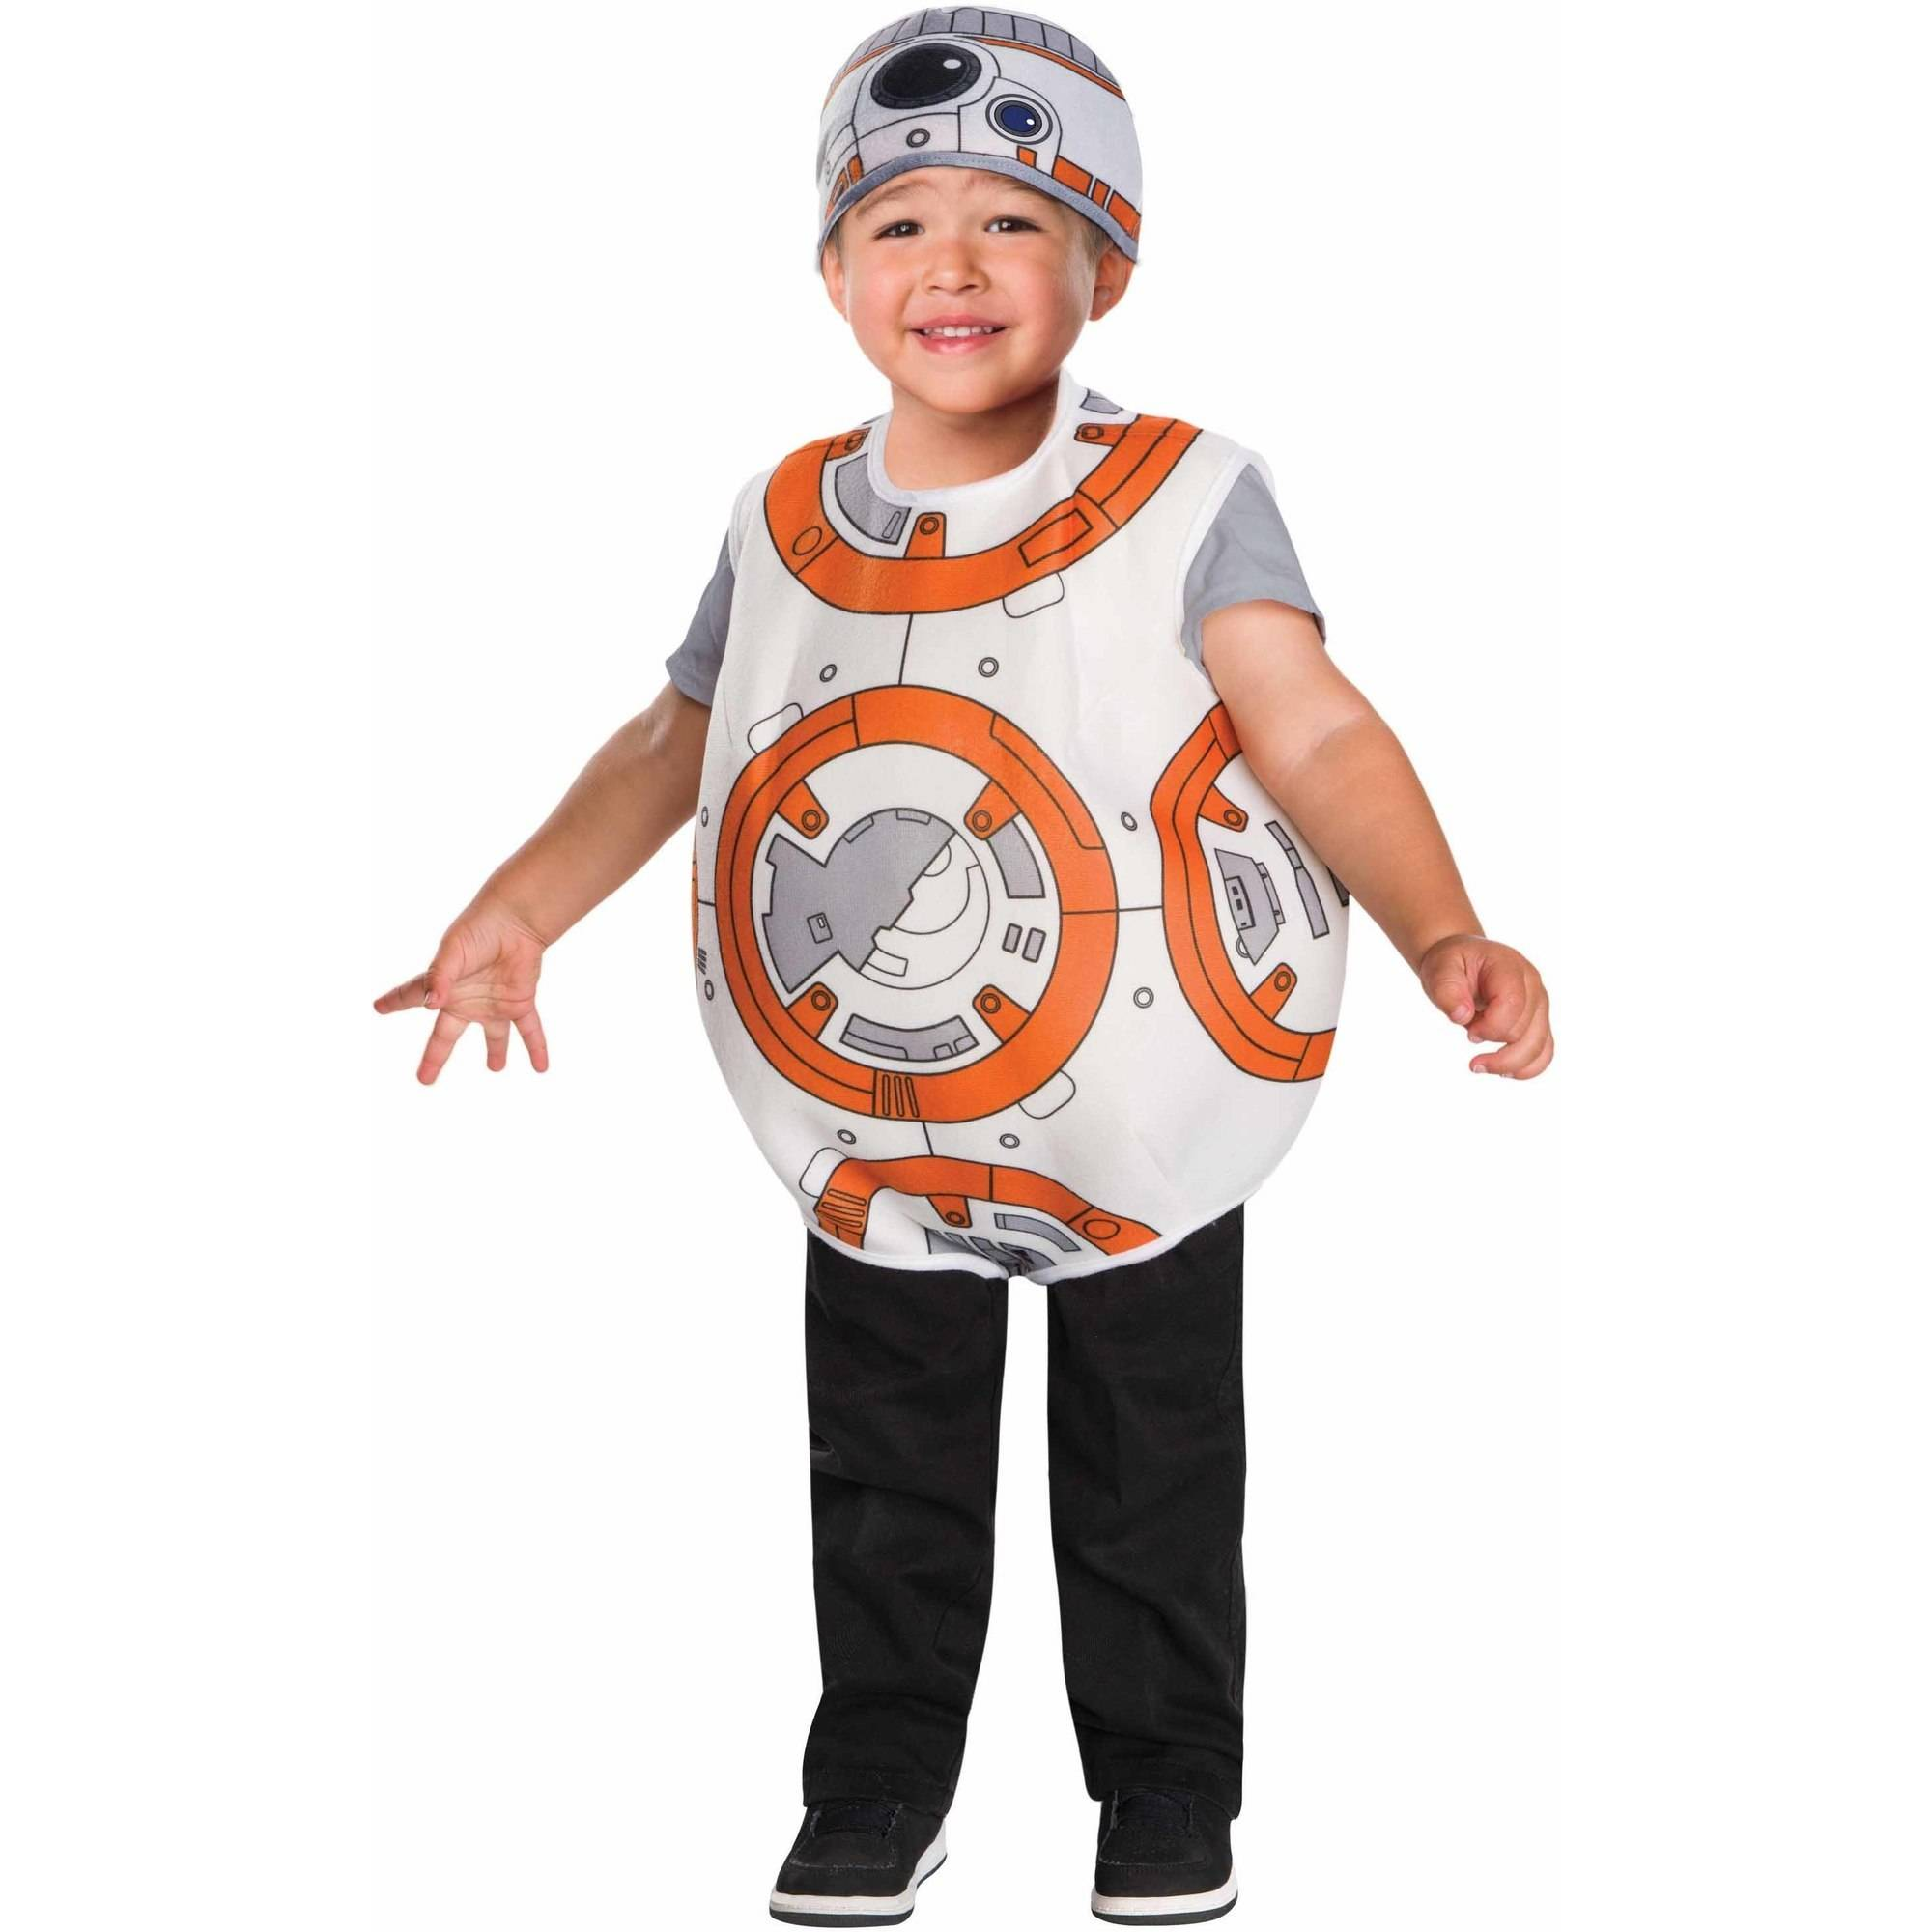 BB-8 Toddler's Costume, 3T-4T